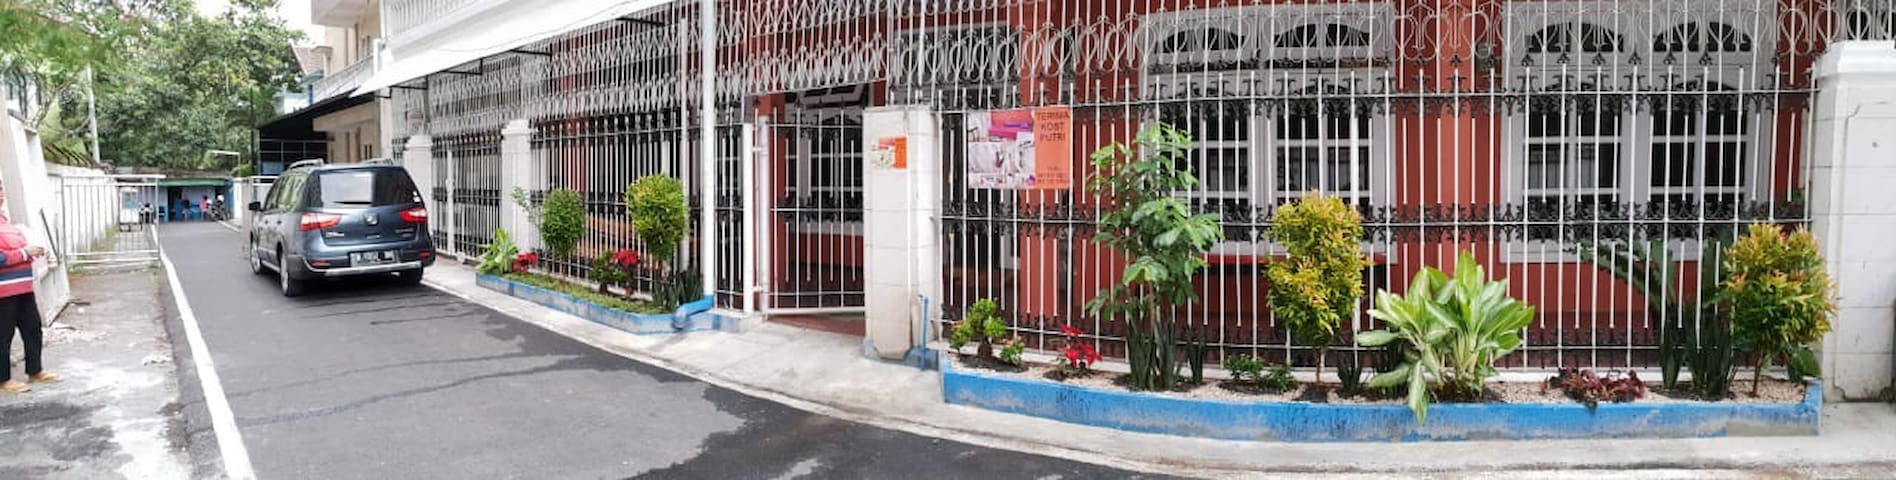 Fiedo Kost and Guest House